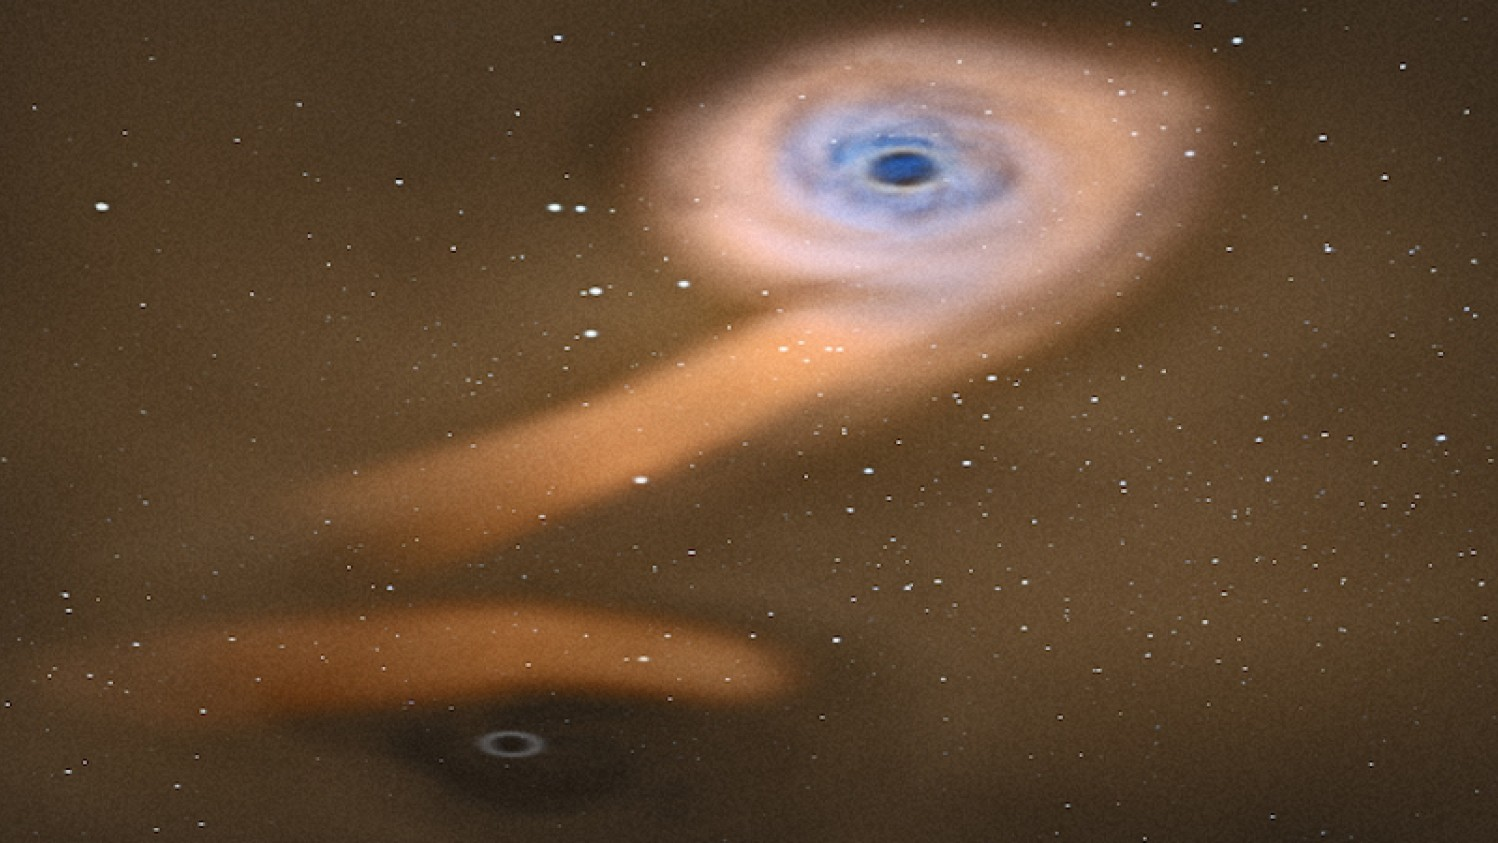 An Astronomical First: Binary Black Holes Devouring a Star in an Inactive Galaxy